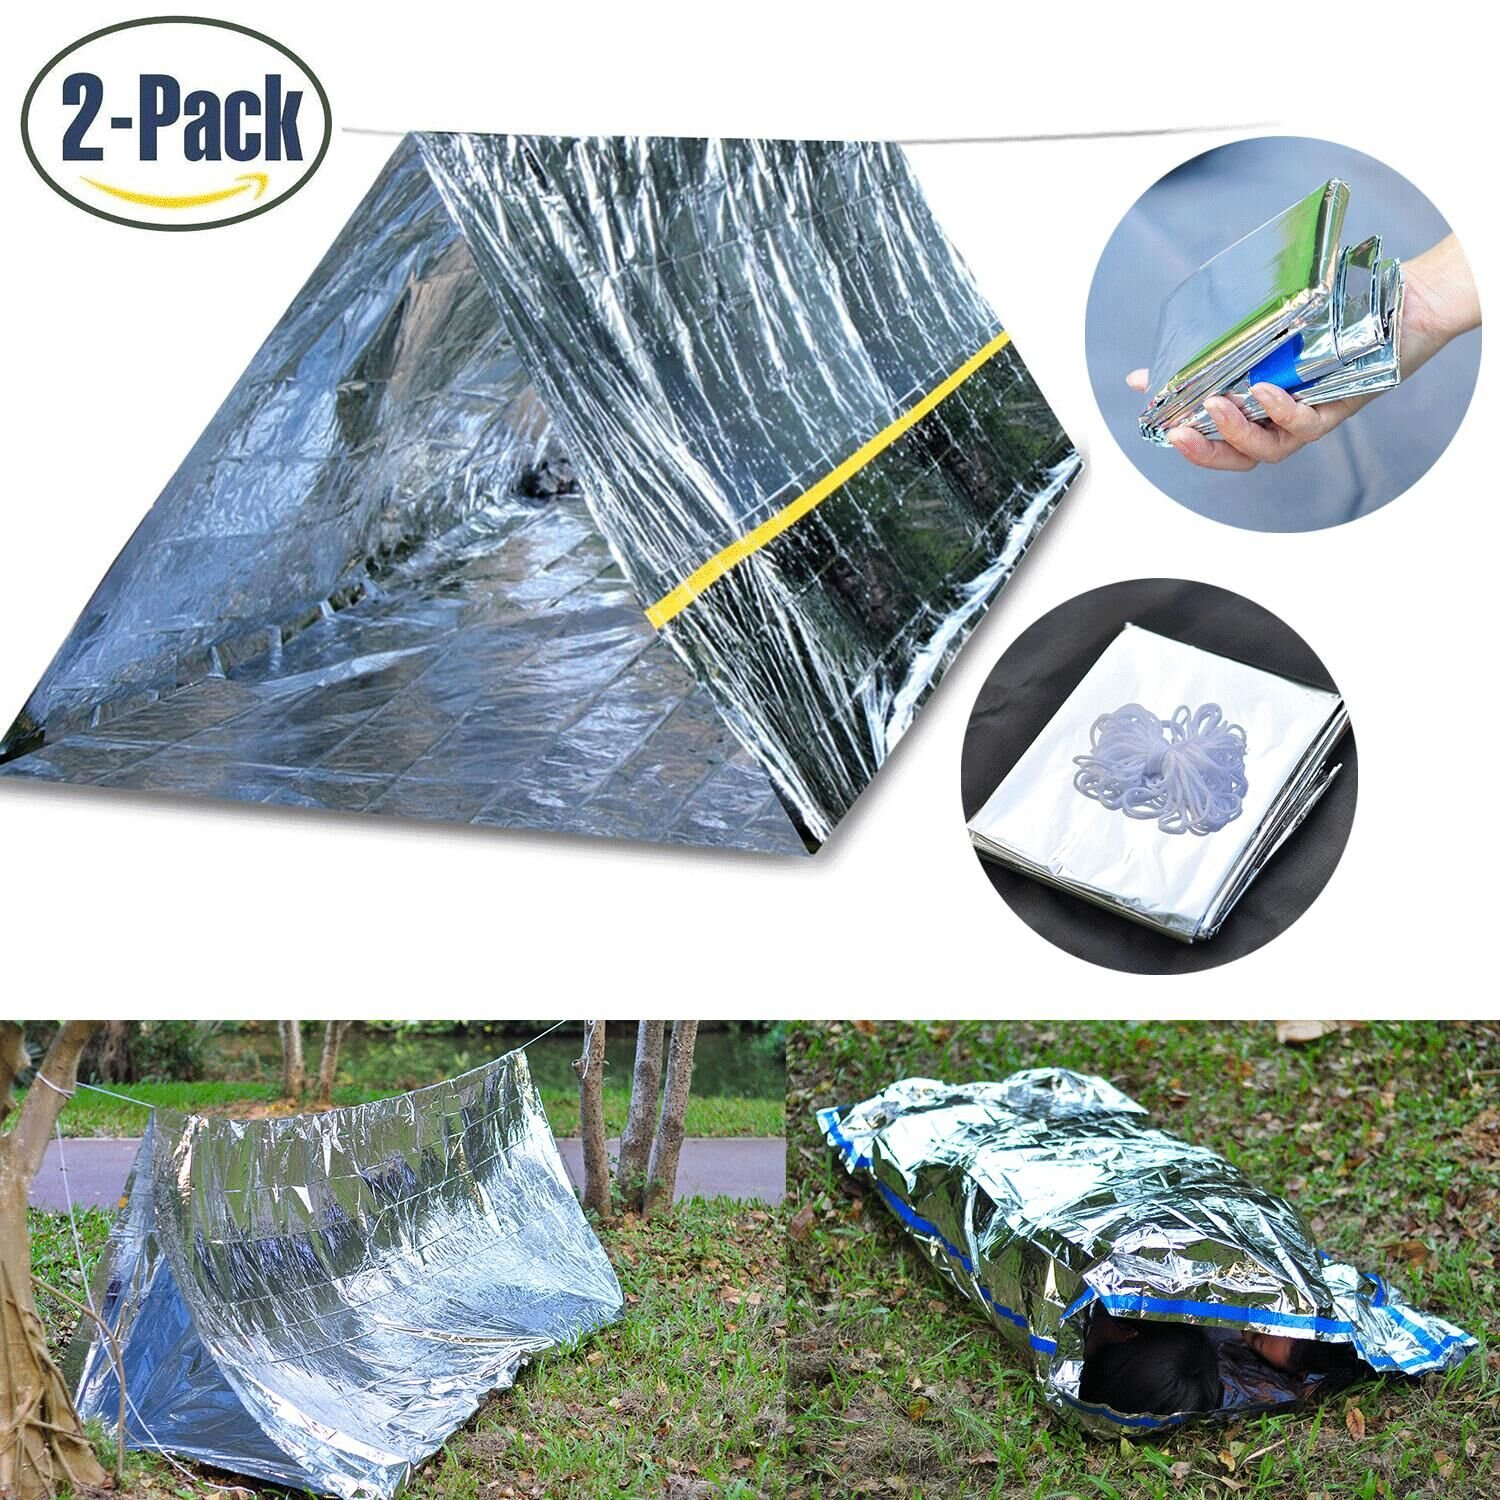 Emergency Survival Kits, Emergency Shelter Tube Tent & Emergency Bag - Super Lightweight Space Blanket Material to Reflect & Retain 99% Body Heat for Camping Hiking Travelling Or Adventures Defler